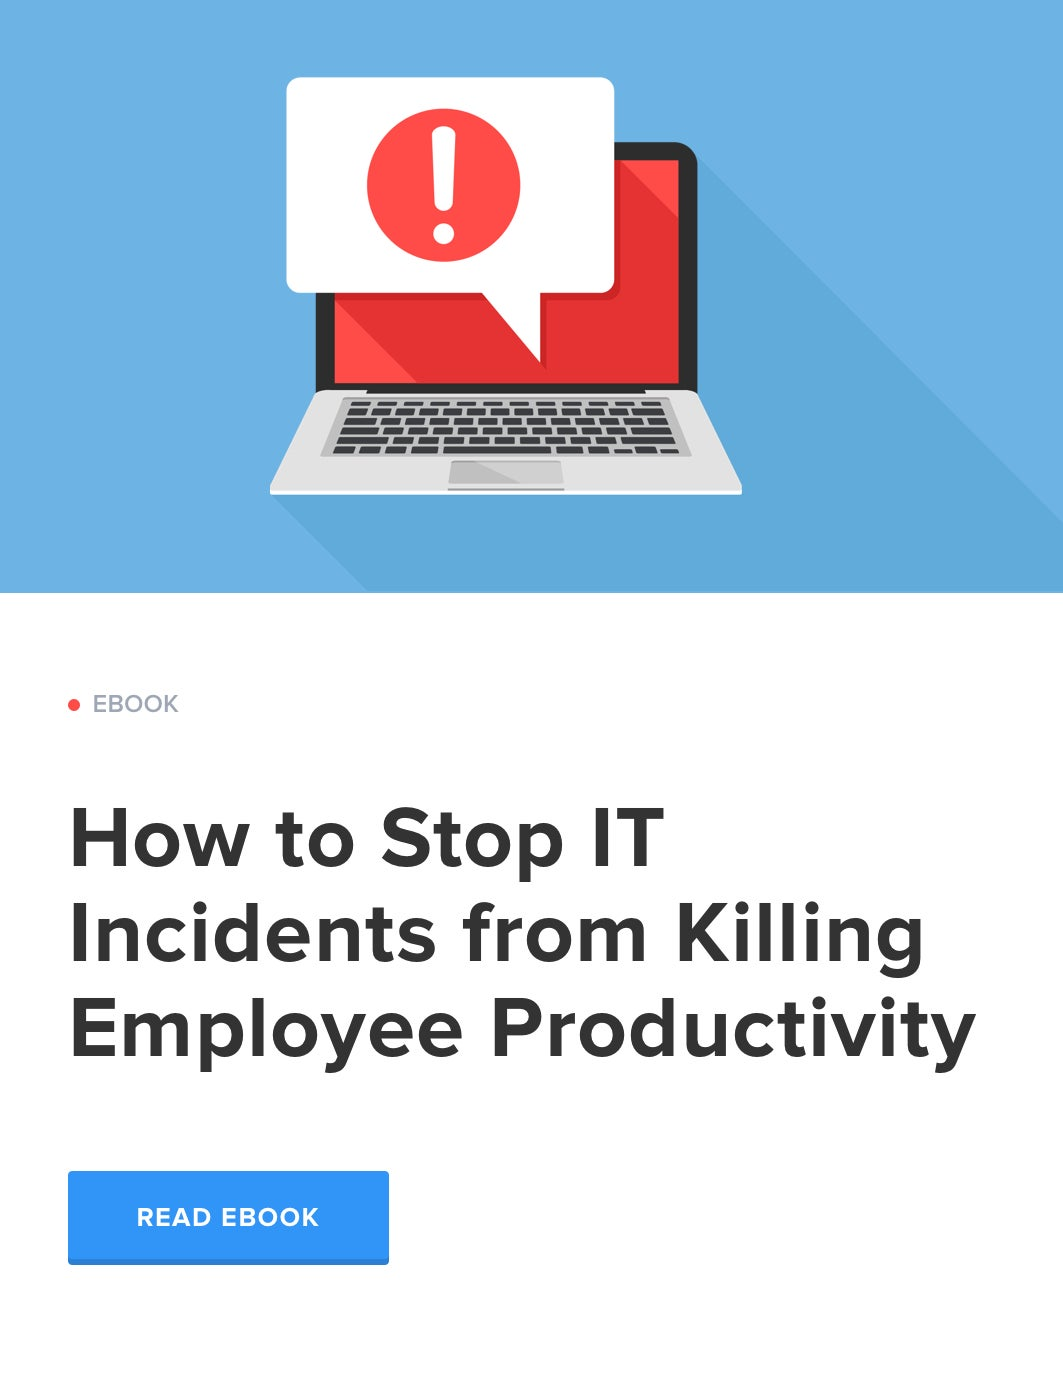 How to Stop IT Incidents From Killing Employee Productivity